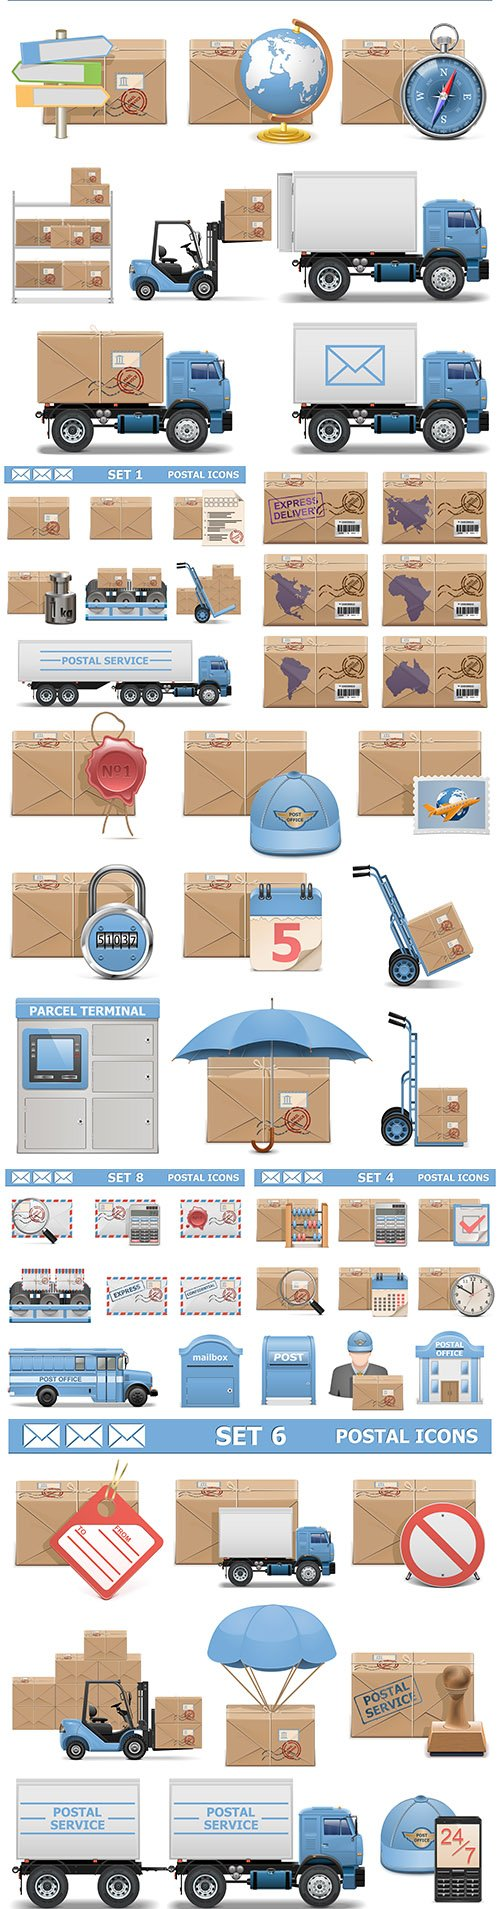 Mail icons and logistics delivery realistic design set